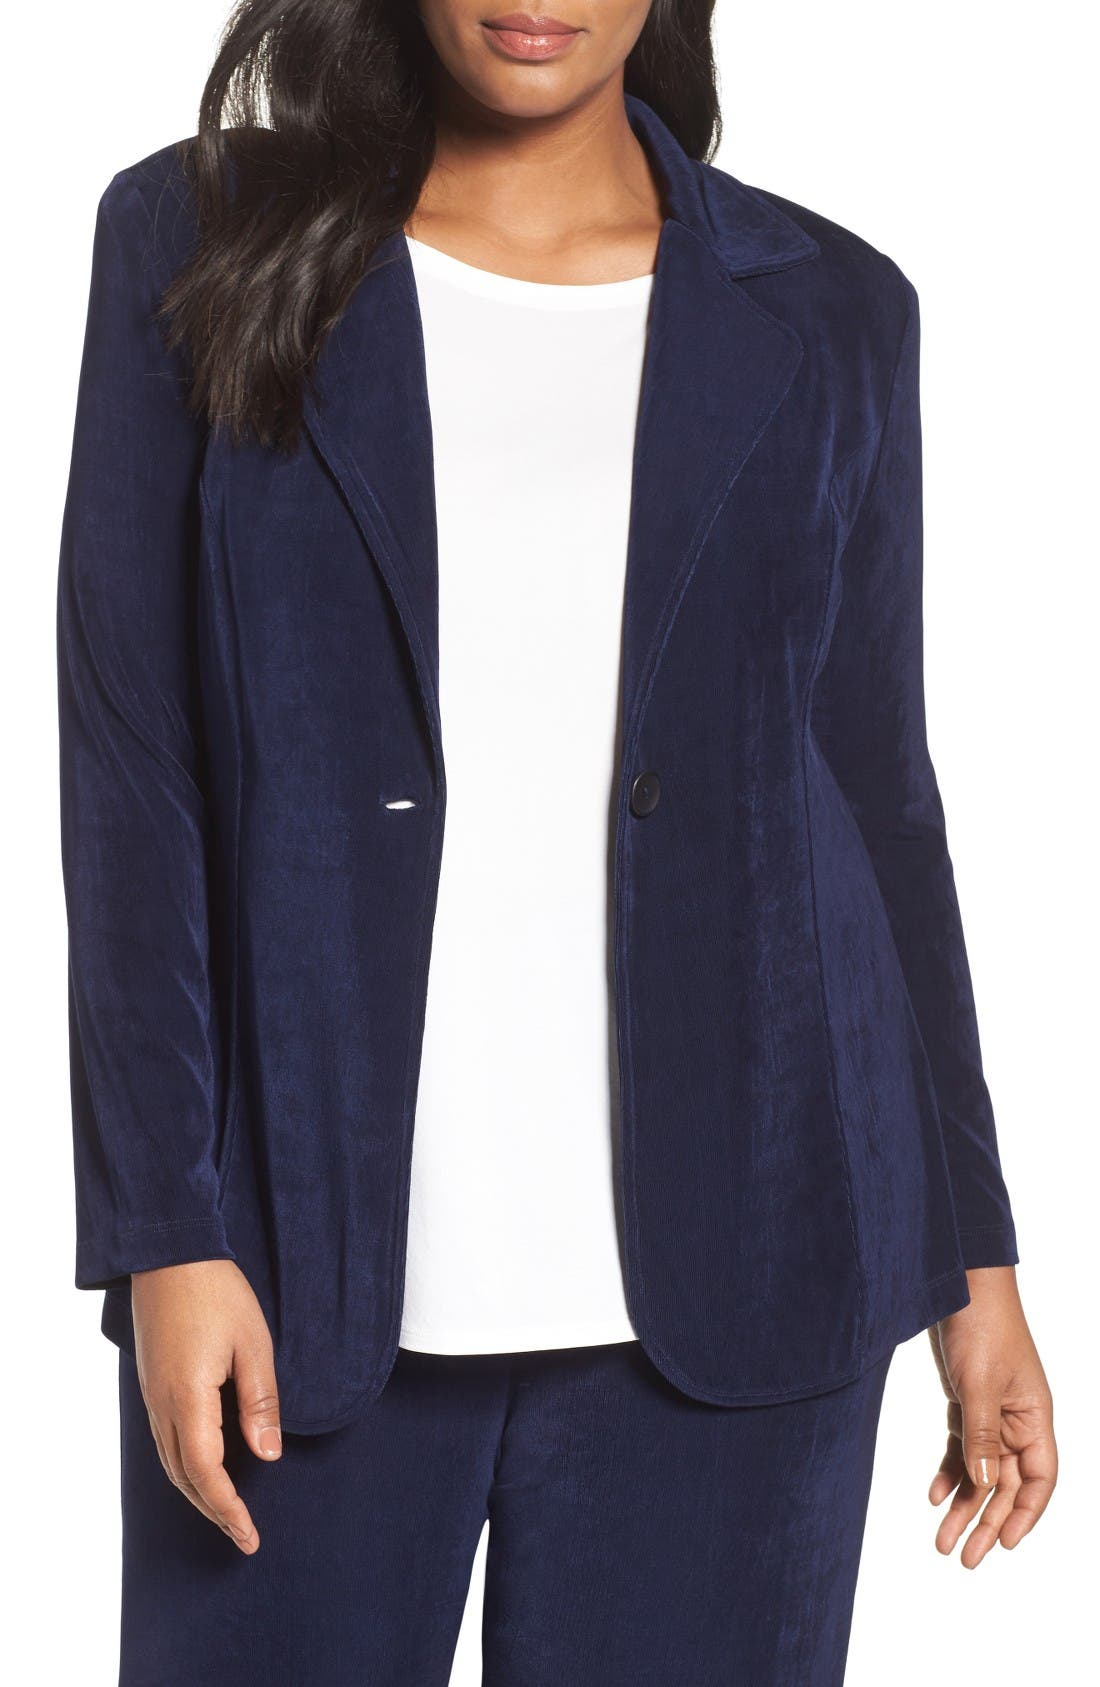 Vikki Vi One-Button Stretch Knit Blazer (Plus Size)